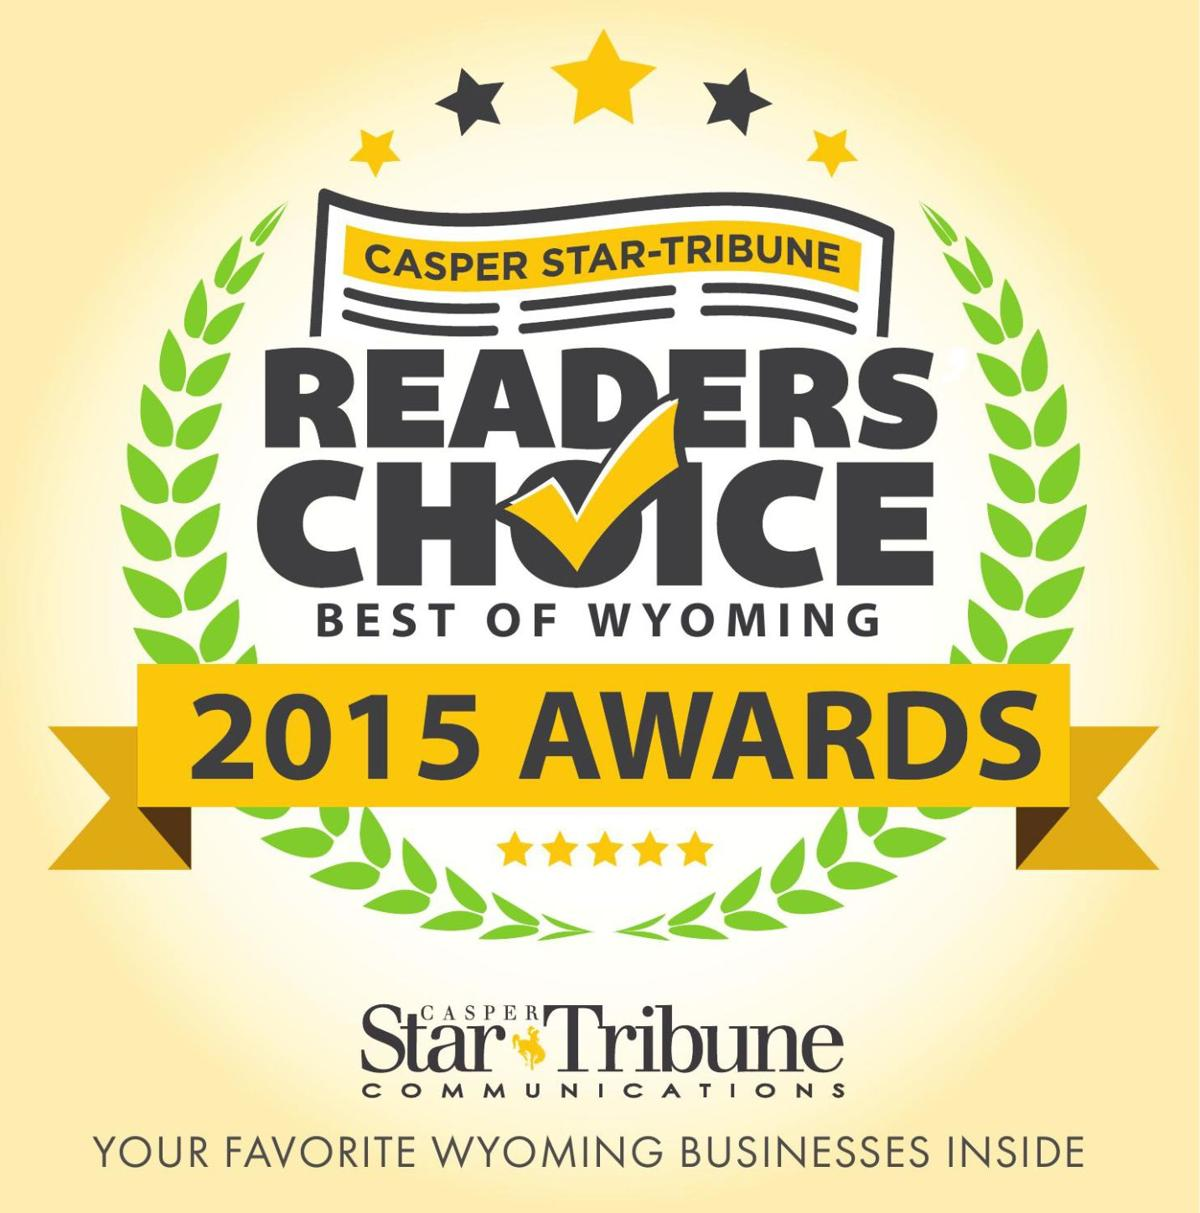 Readers Choice: Best of Wyoming